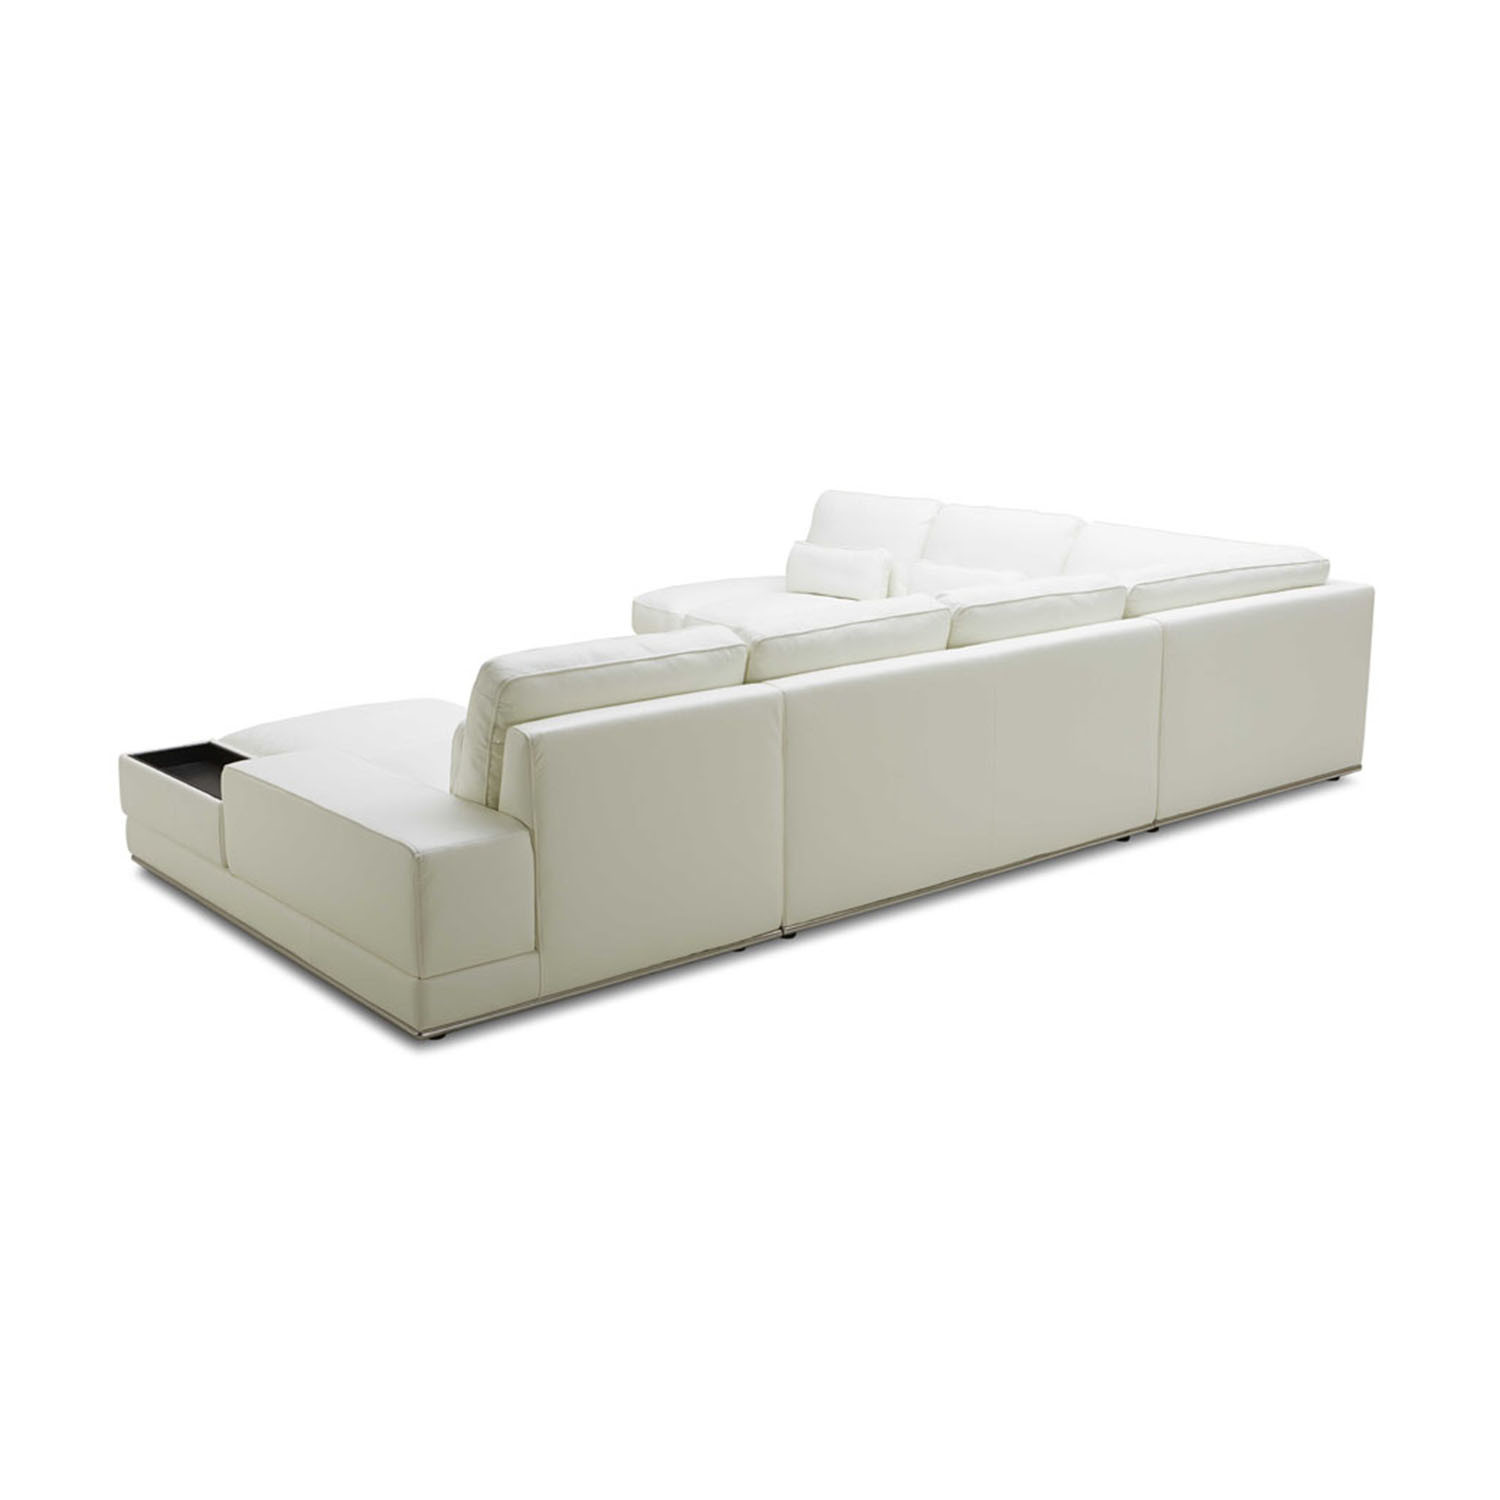 Nolan 3 piece sectional sofa right chaise zuri for 3 piece sectional sofa sale